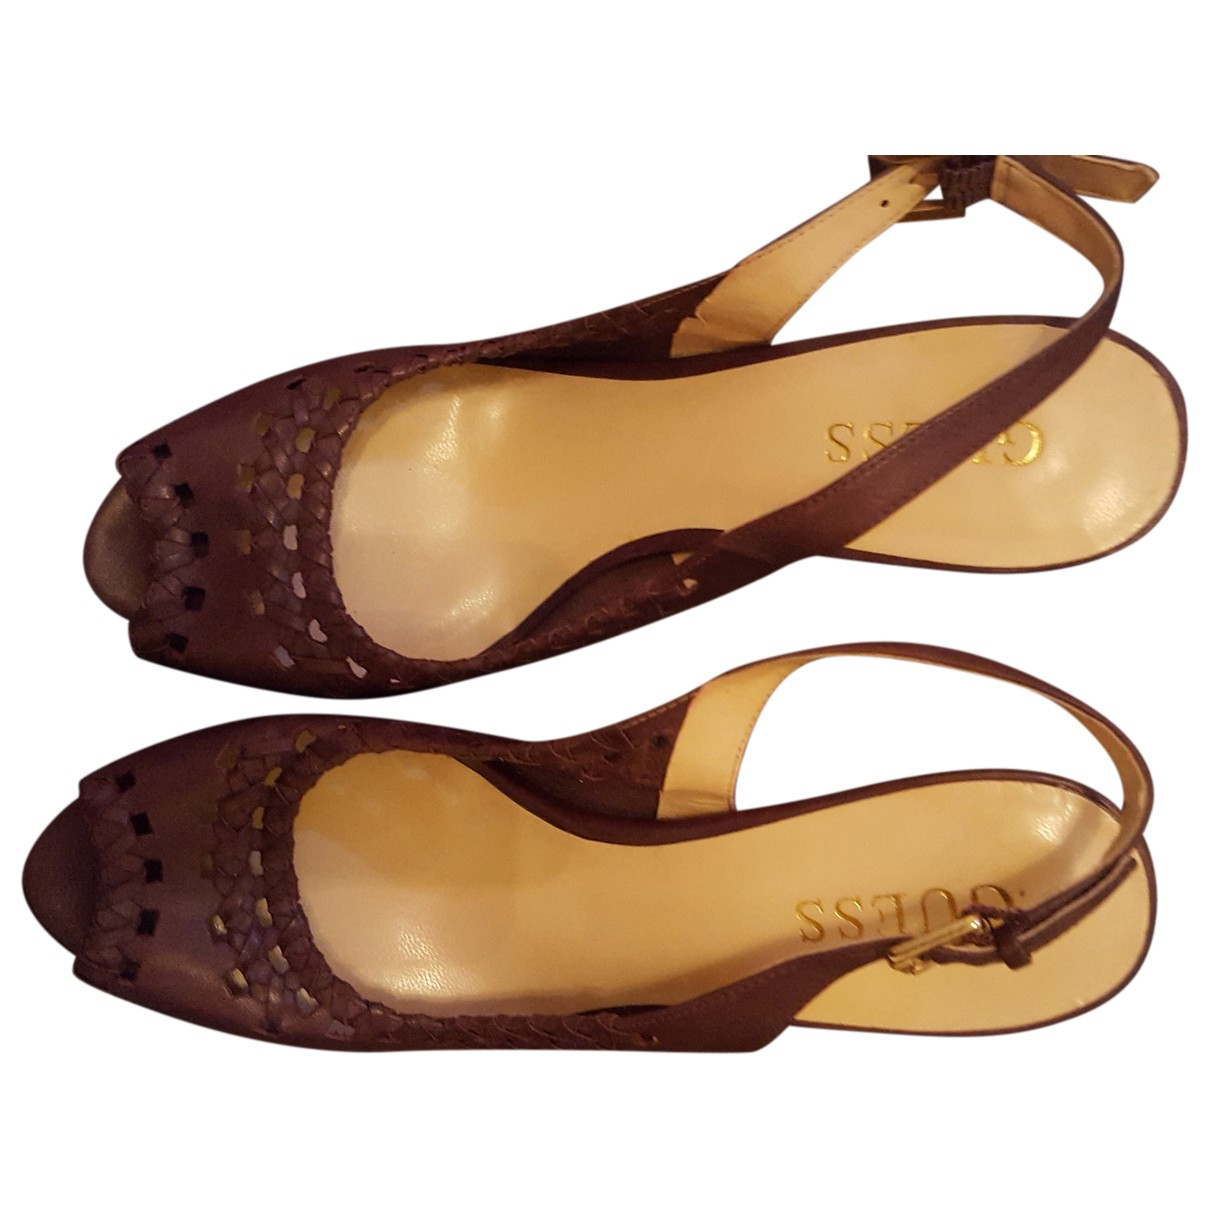 Guess N Patent leather Heels for Women 36 EU